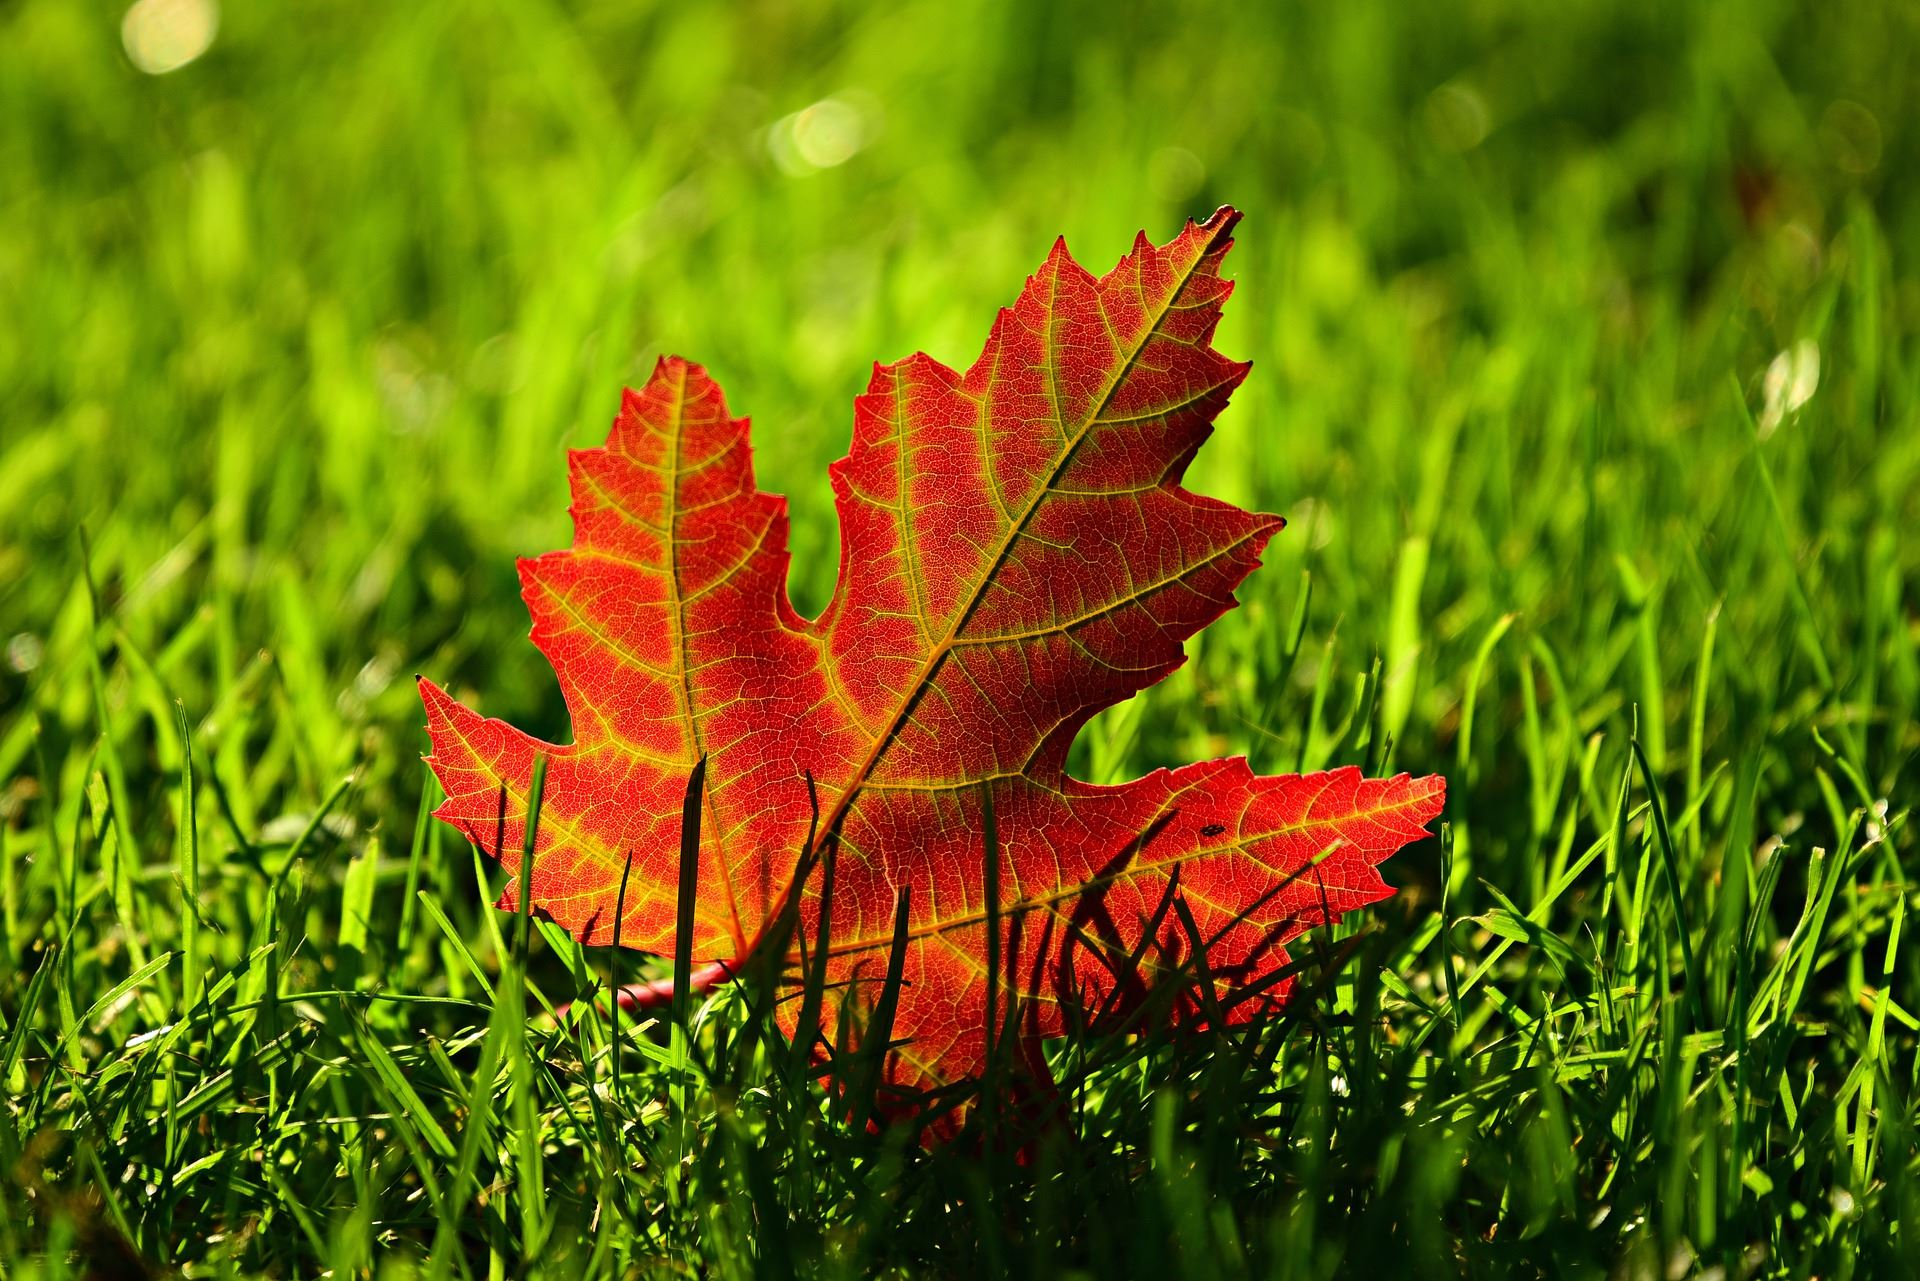 A red, autumn Maple leaf in green grass